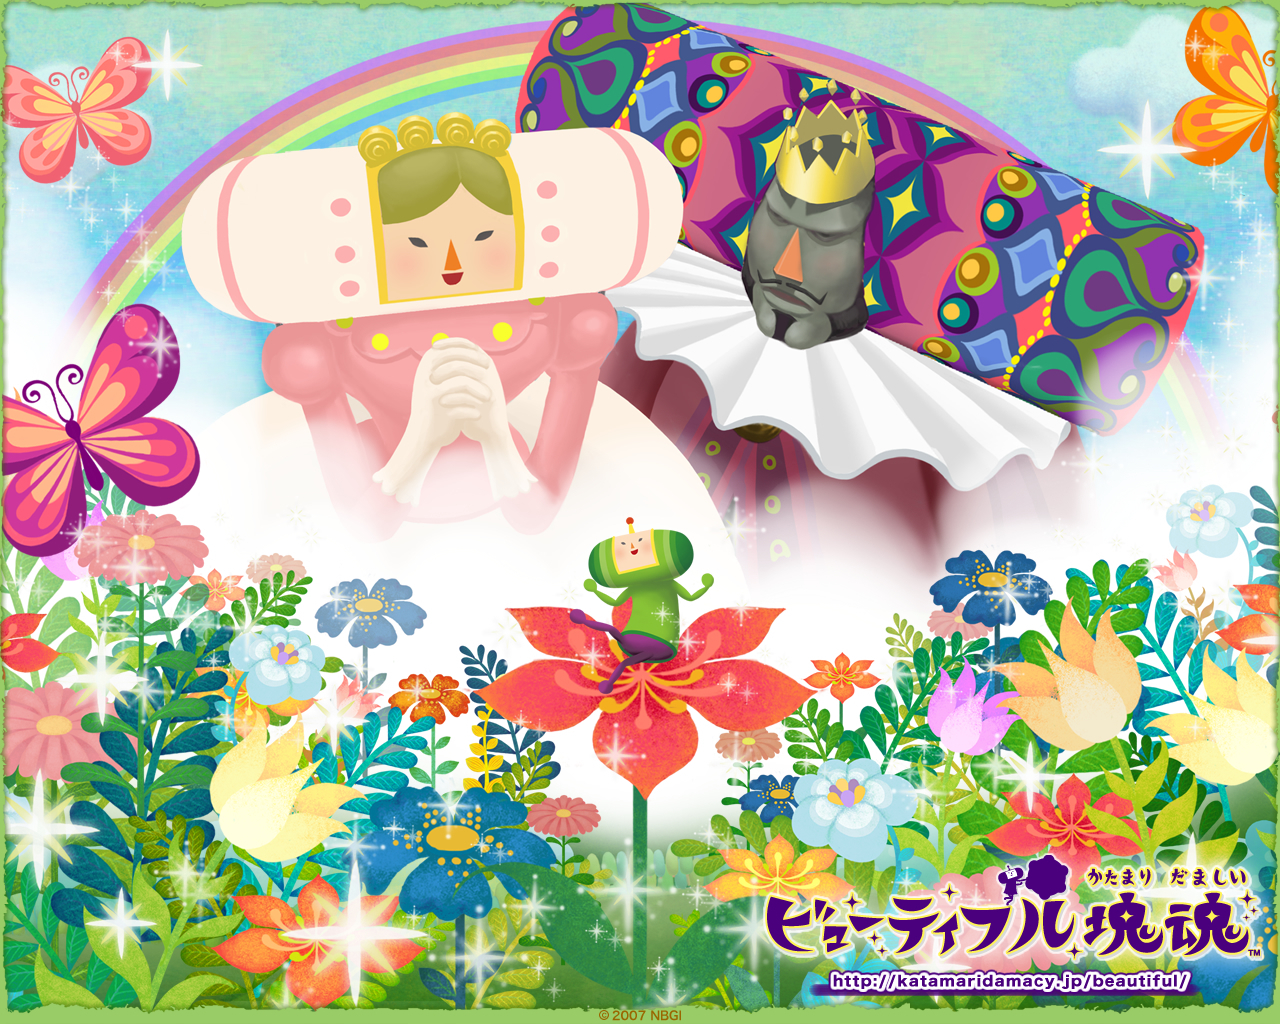 Katamari Manga Anime HD Wallpaper